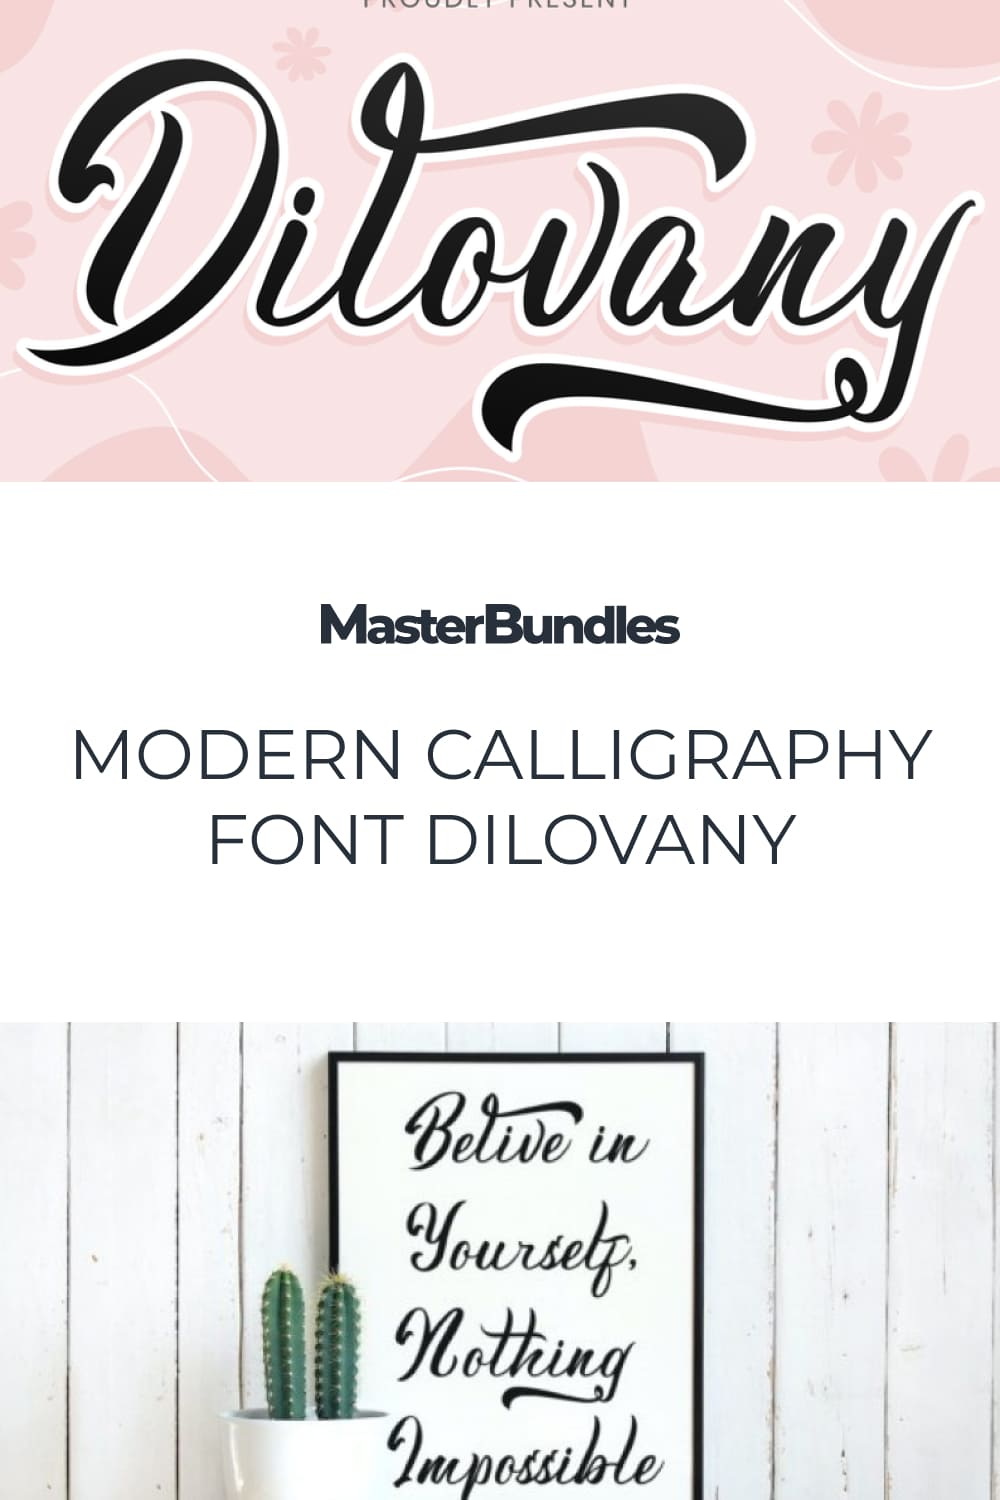 Dilovany is a Modern Calligraphy font that will give a beautiful impression to your designs.